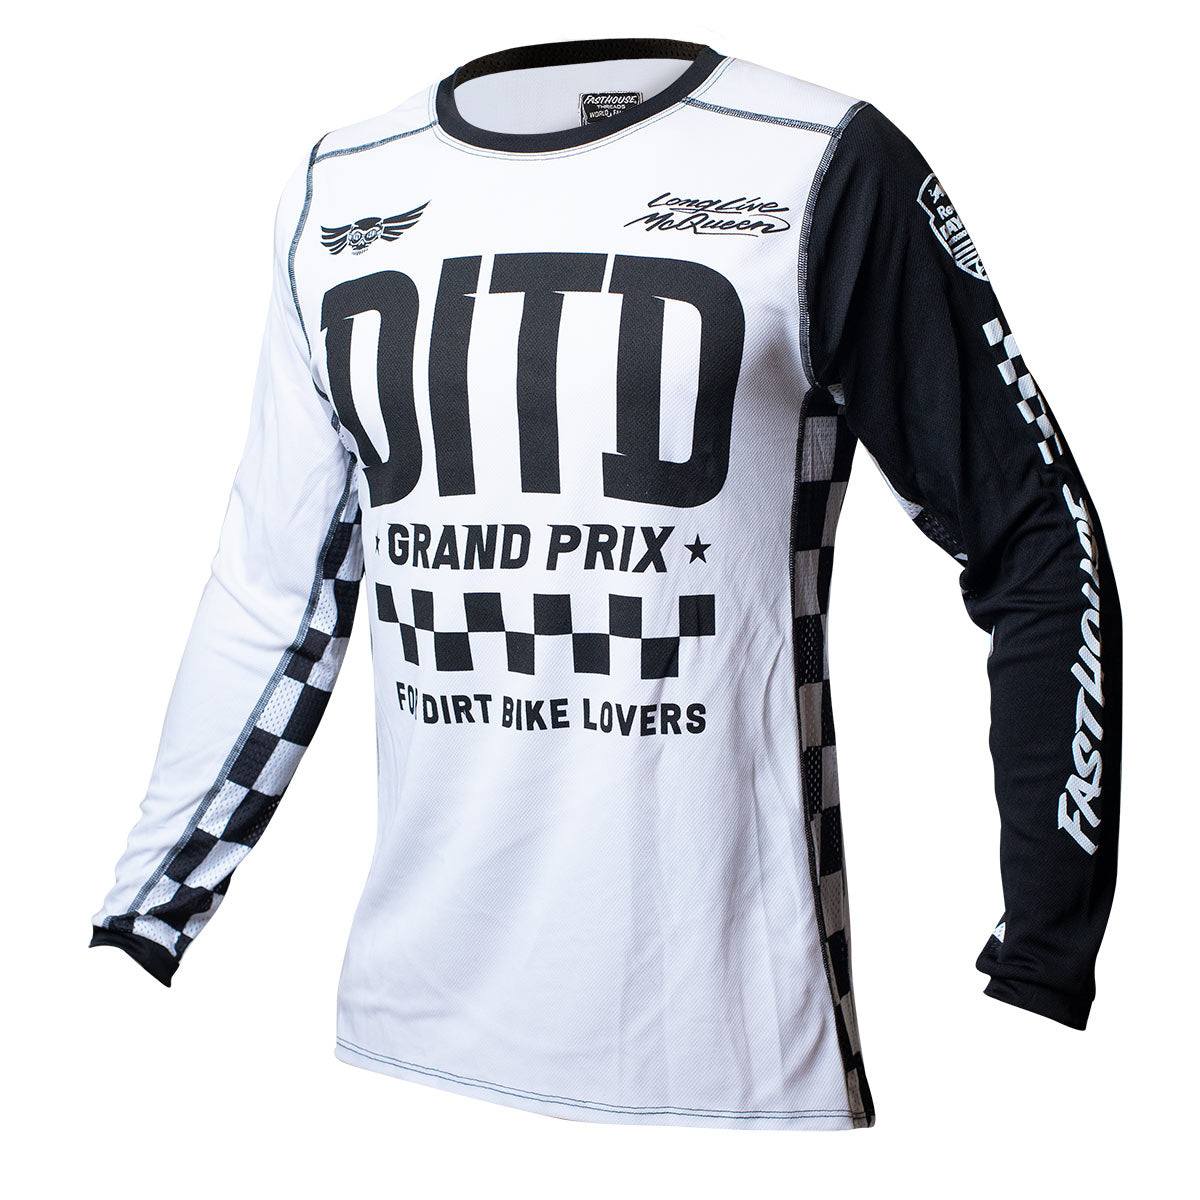 Day in the Dirt 23 Grand Prix Jersey